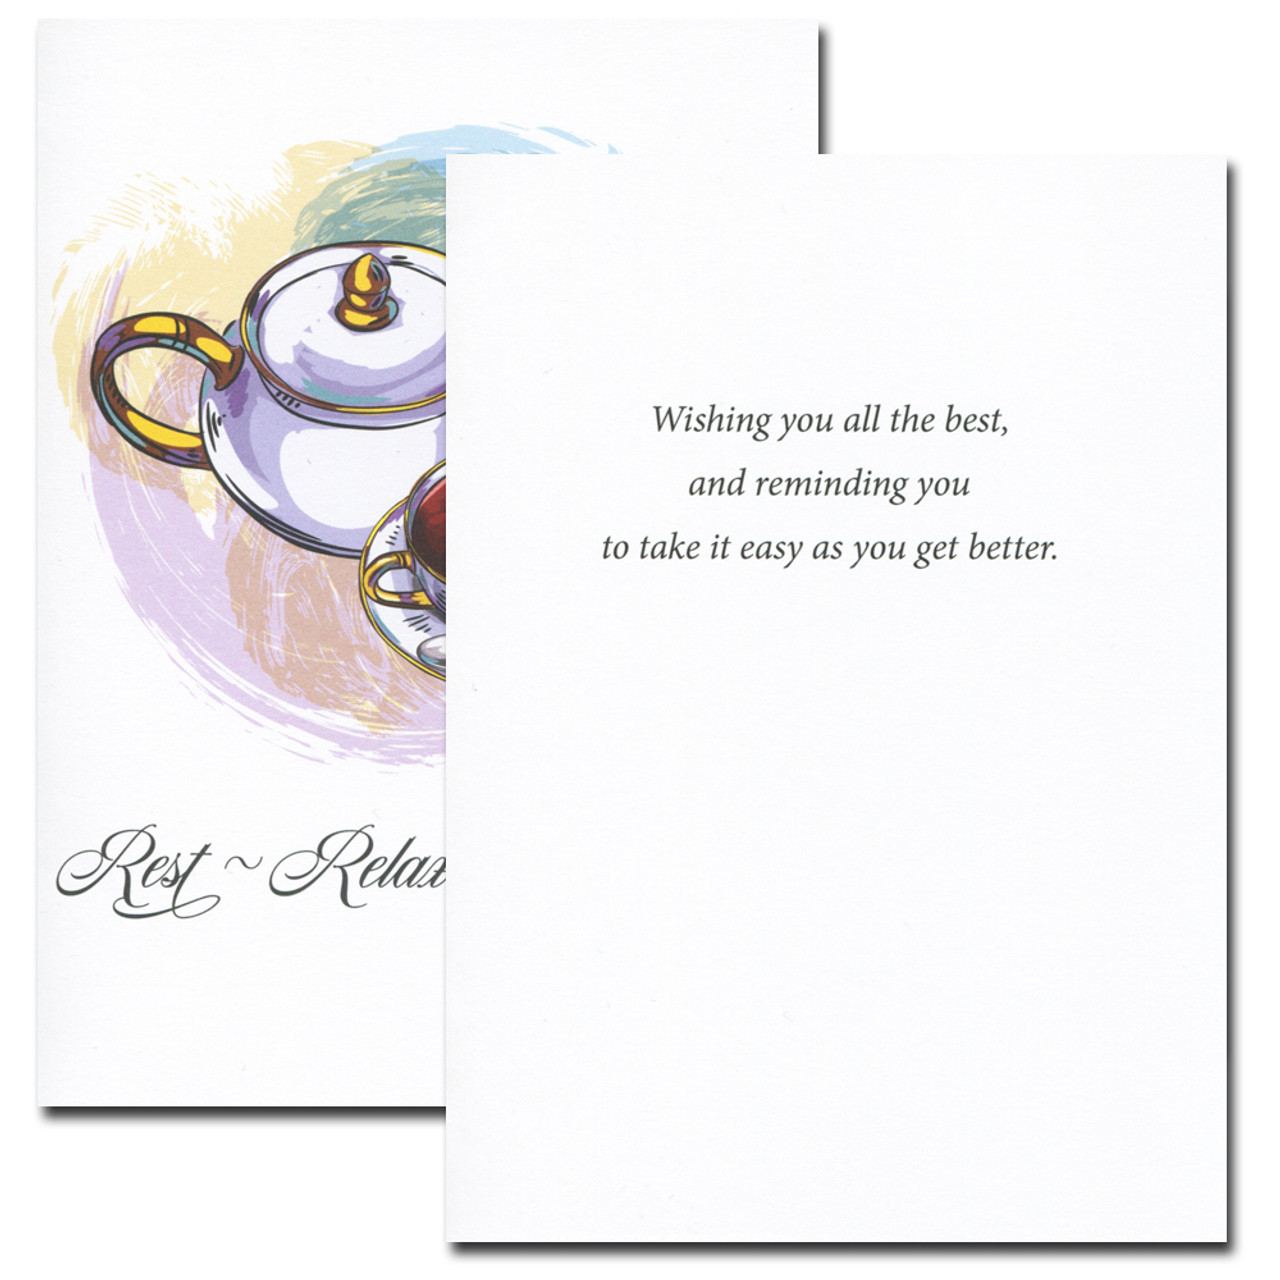 Rest Relax Recover Card. Inside message reads: Wishing you all the best and reminding you to take it easy as you get better